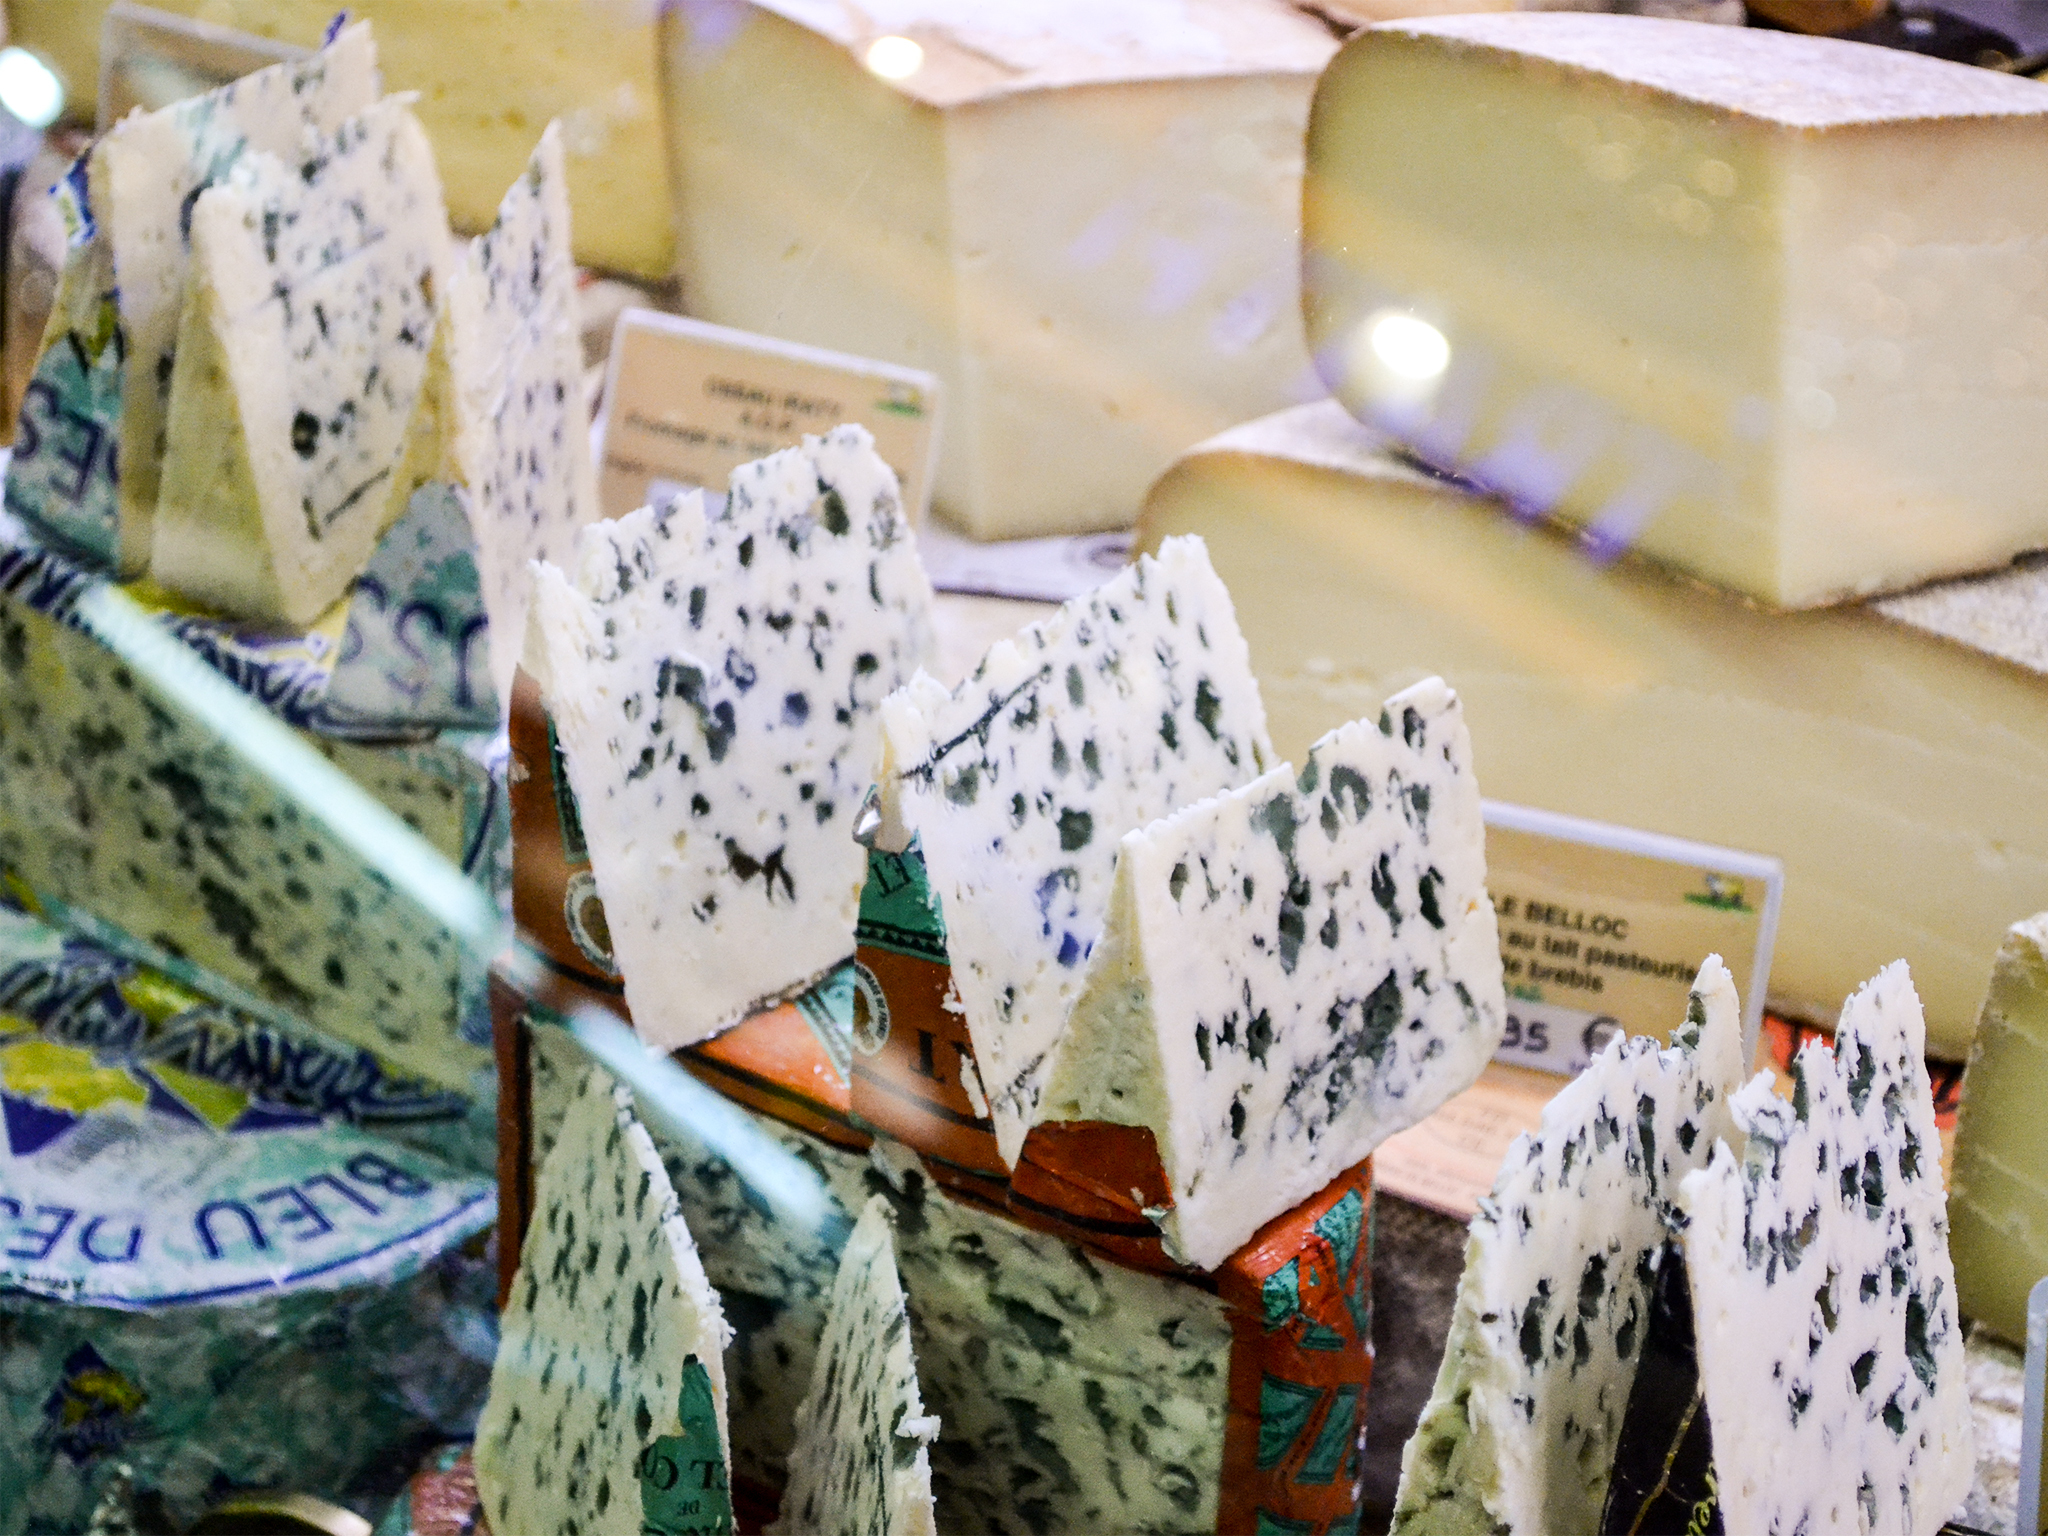 Slices of Roquefort cheese